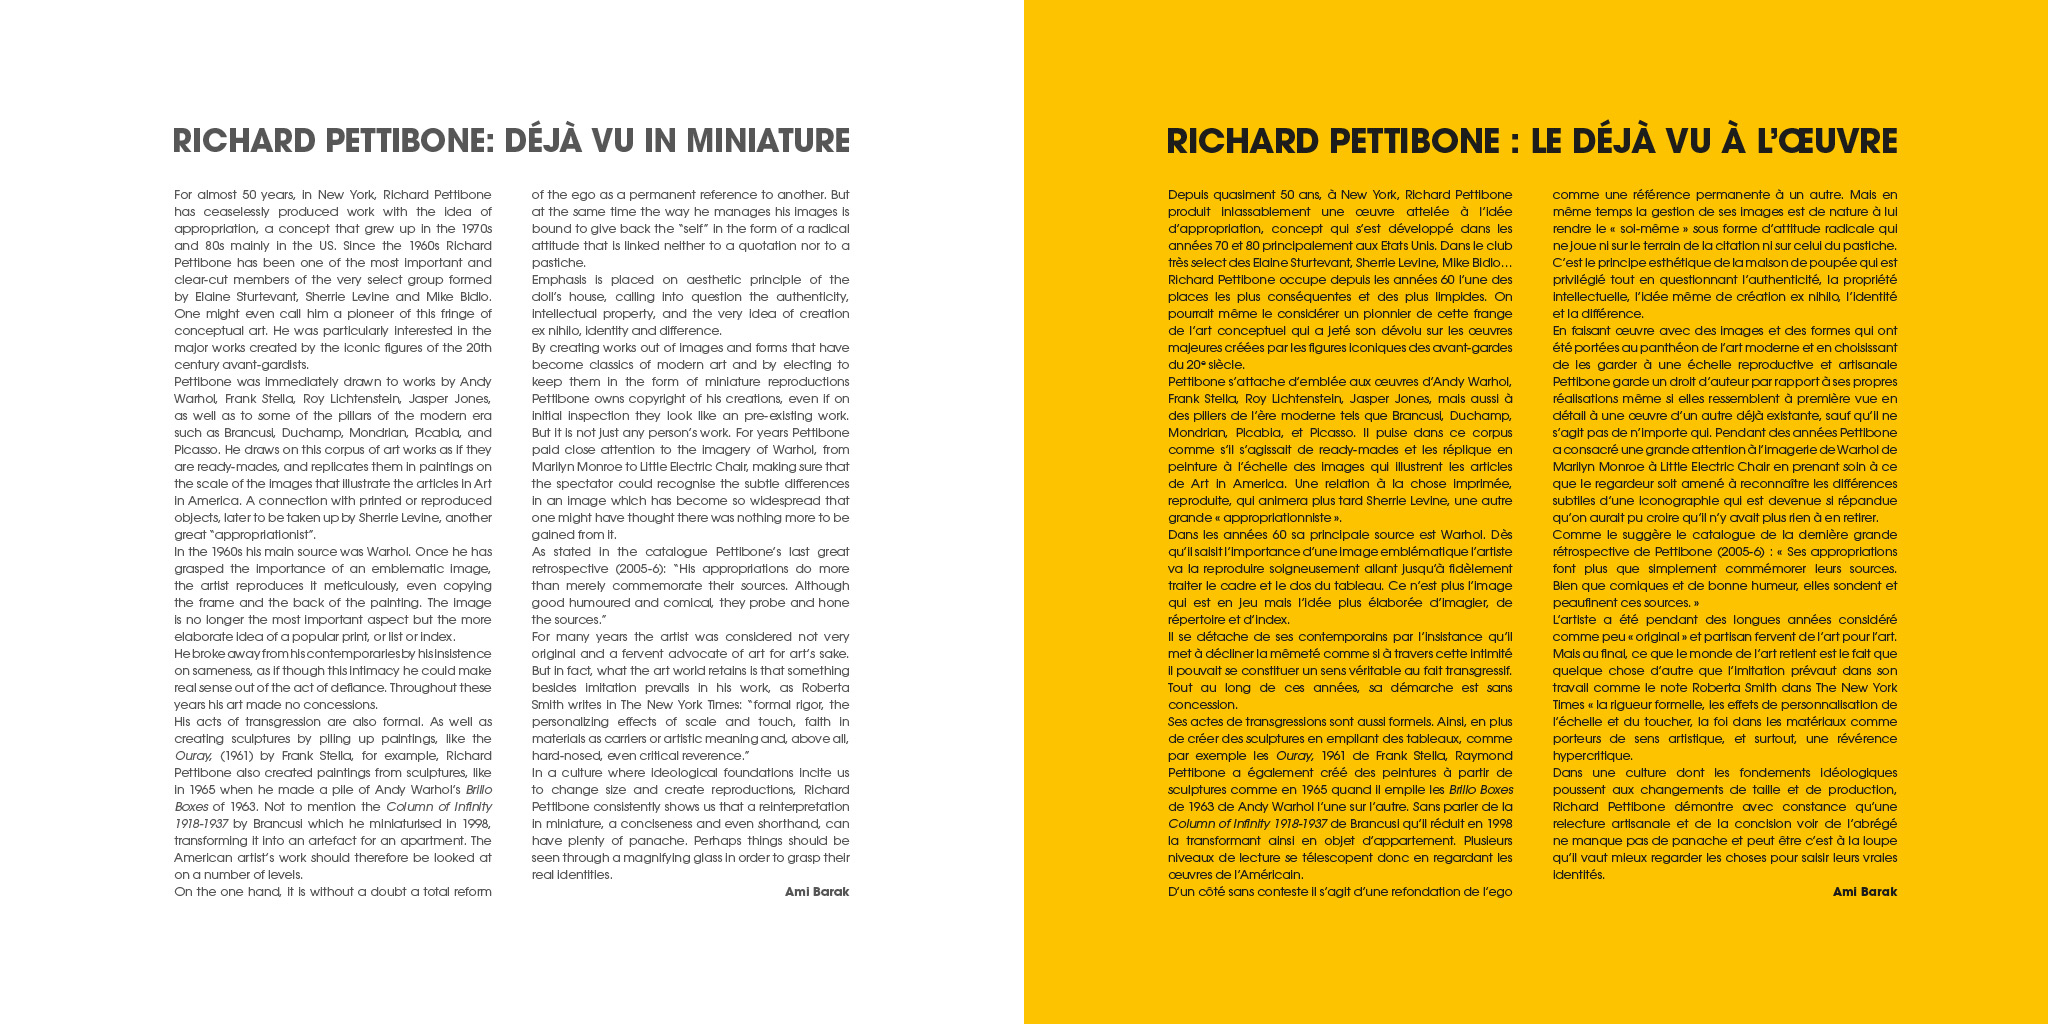 GALERIE MITTERRAND Catalogue Richard Pettibone. Exposition Art contemporain Tableaux